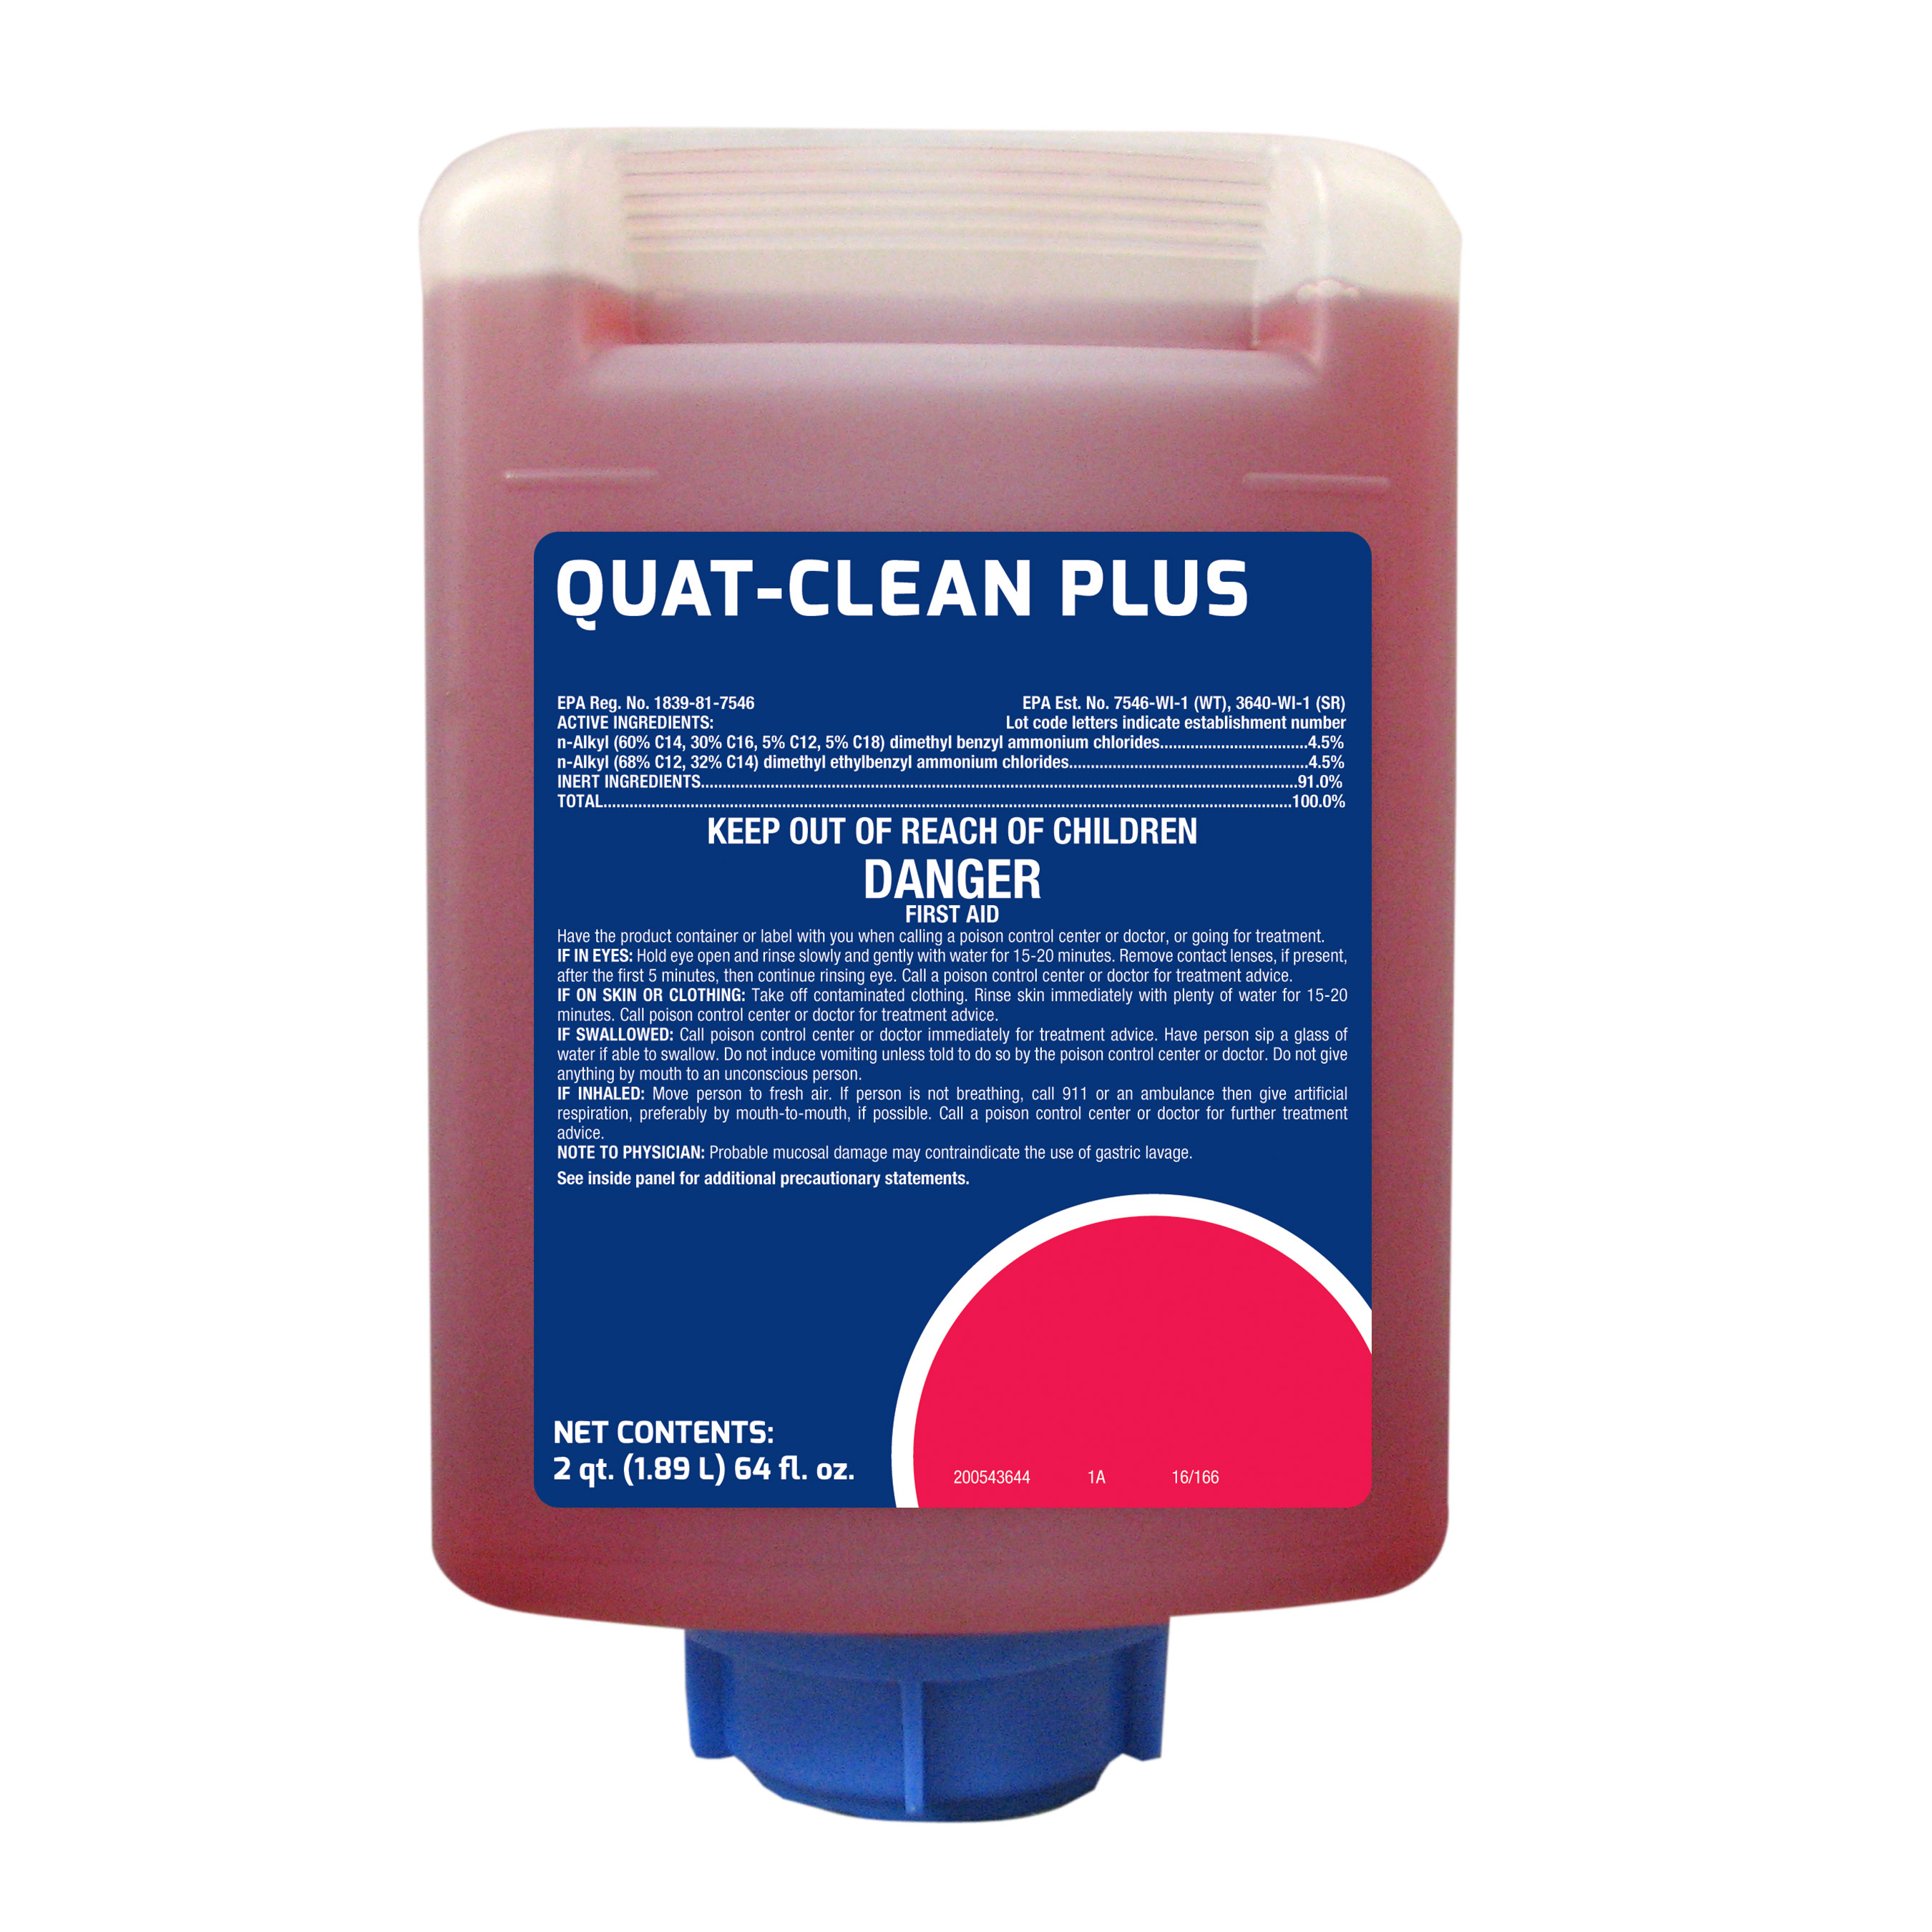 5497280_QUAT_CLEAN_PLUS_2QT